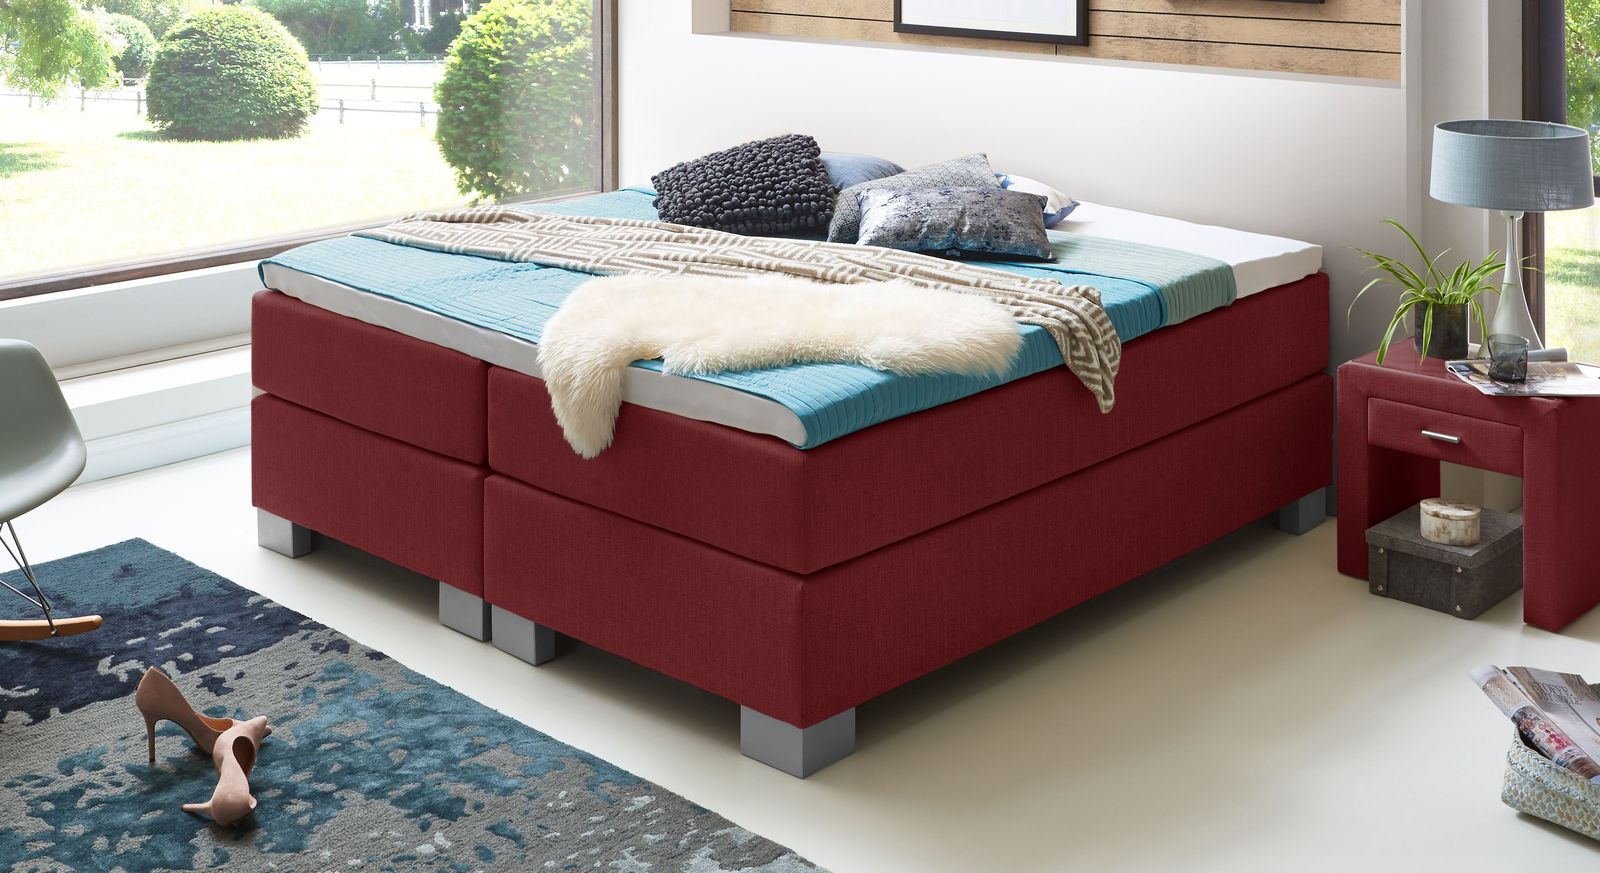 66 cm hohe Boxspringliege Puebla aus meliertem Webstoff in Rot